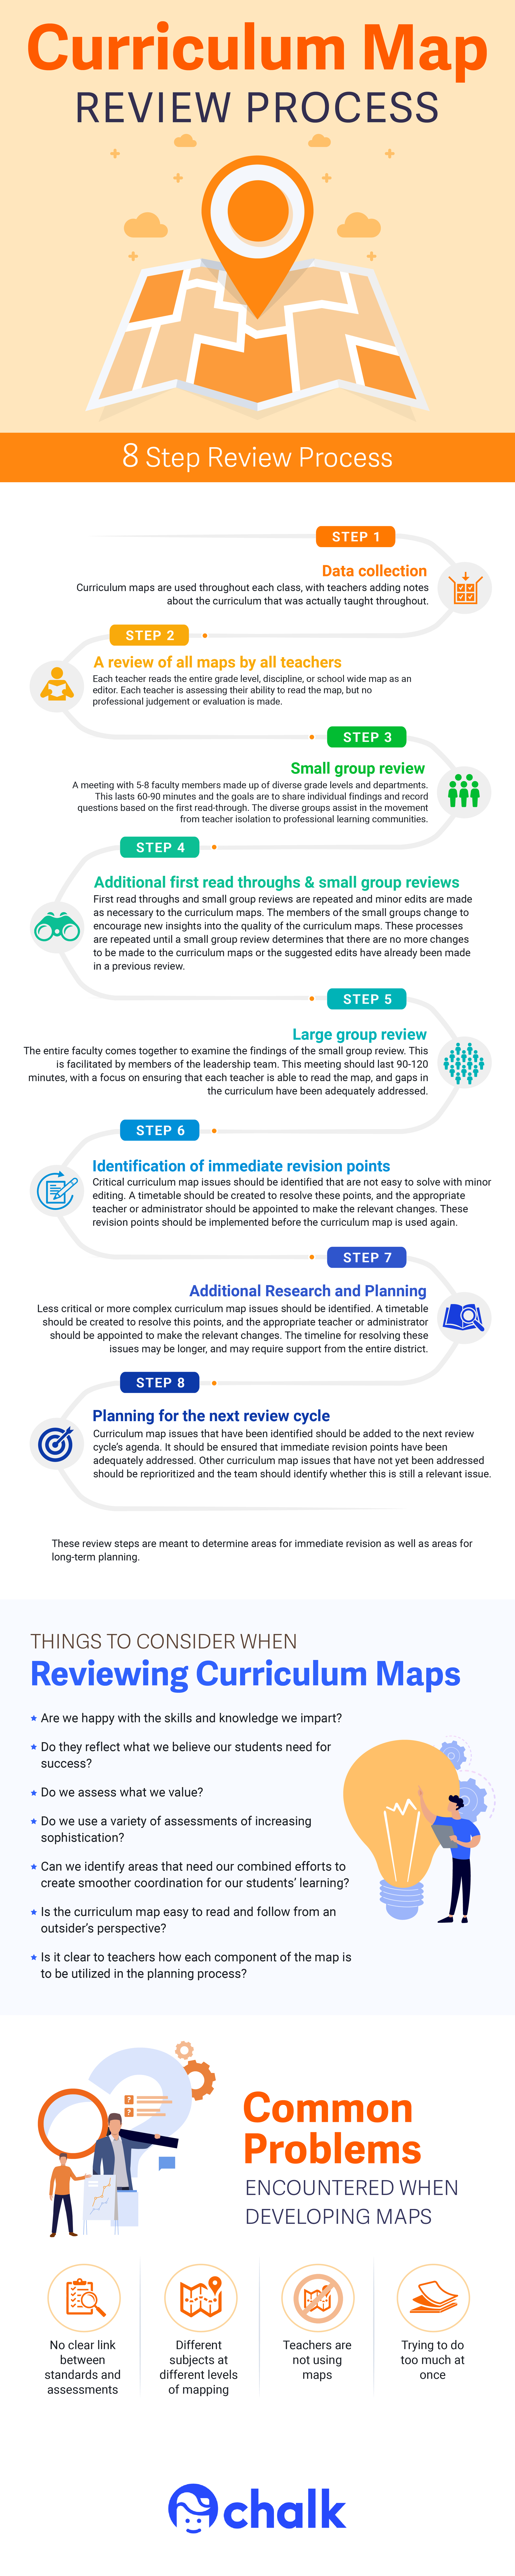 Curriculum Map Review Process [Infographic]